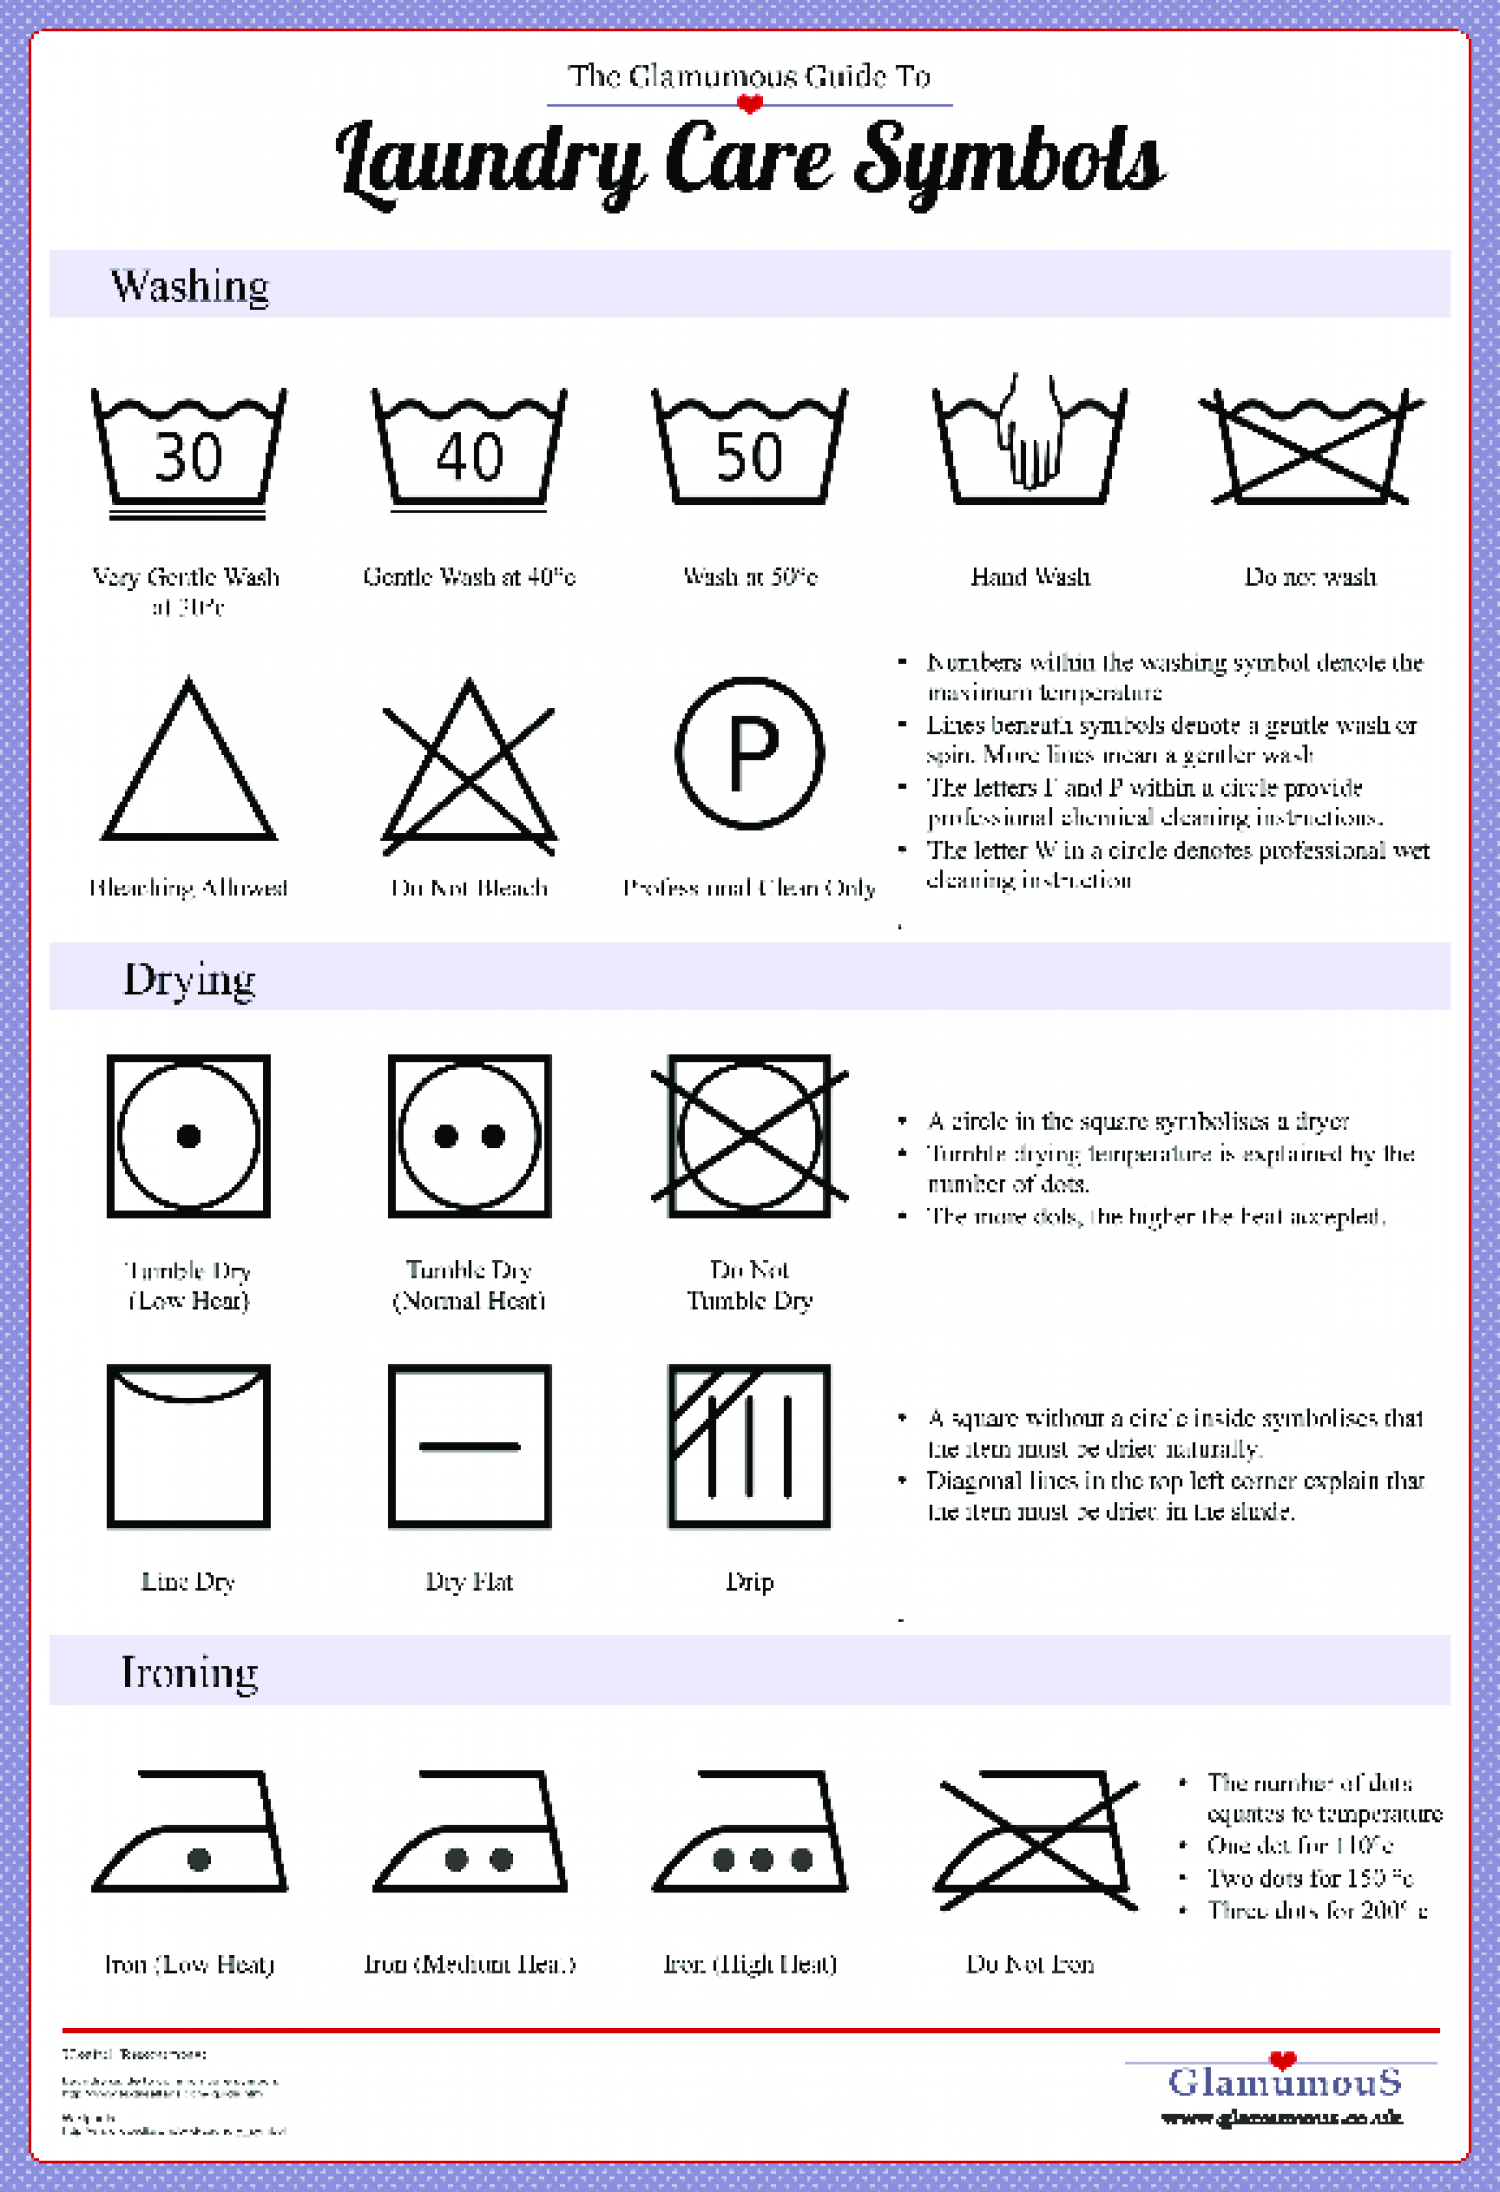 Guide To Laundry Care Symbols